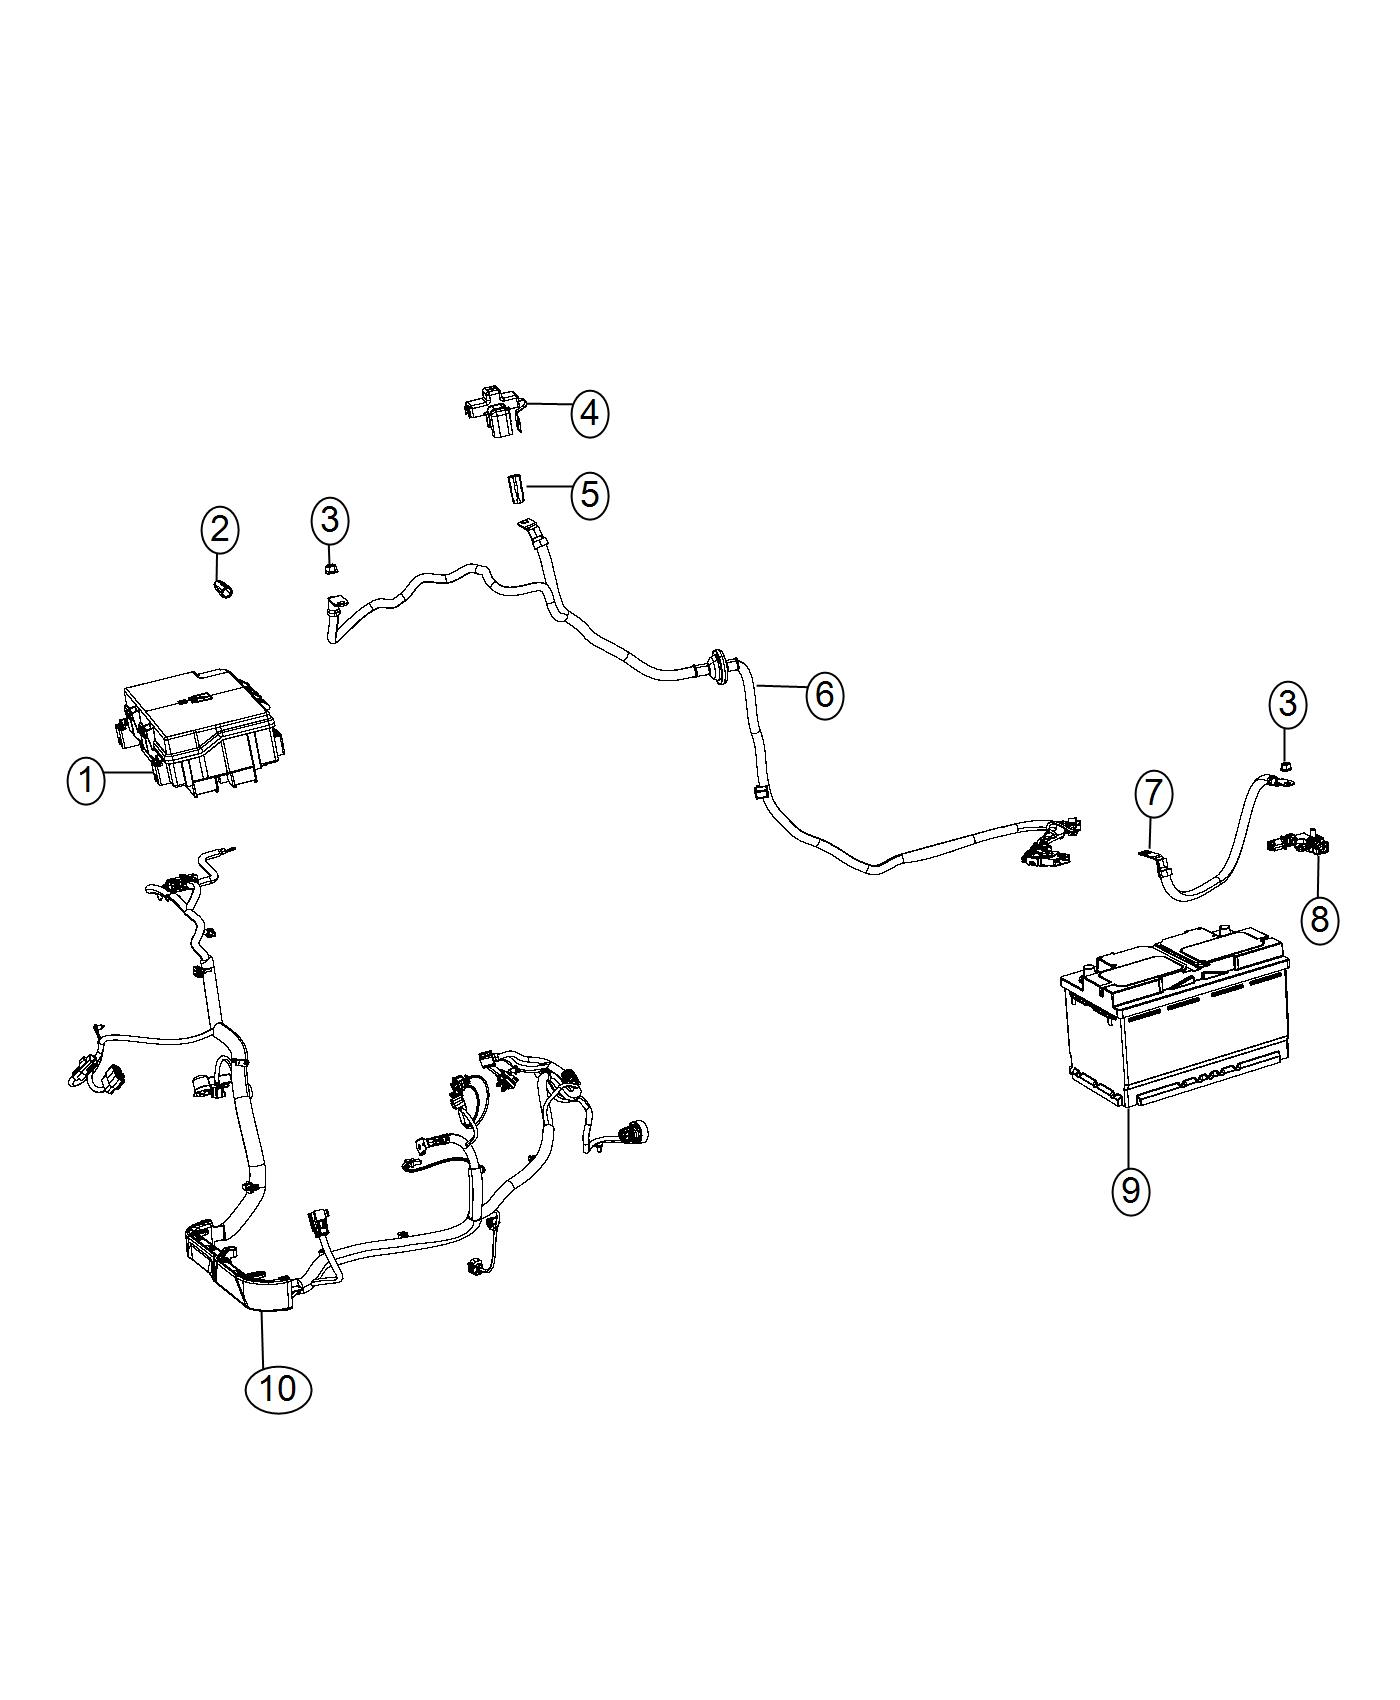 Jeep Grand Cherokee Wiring. Used for: battery, alternator